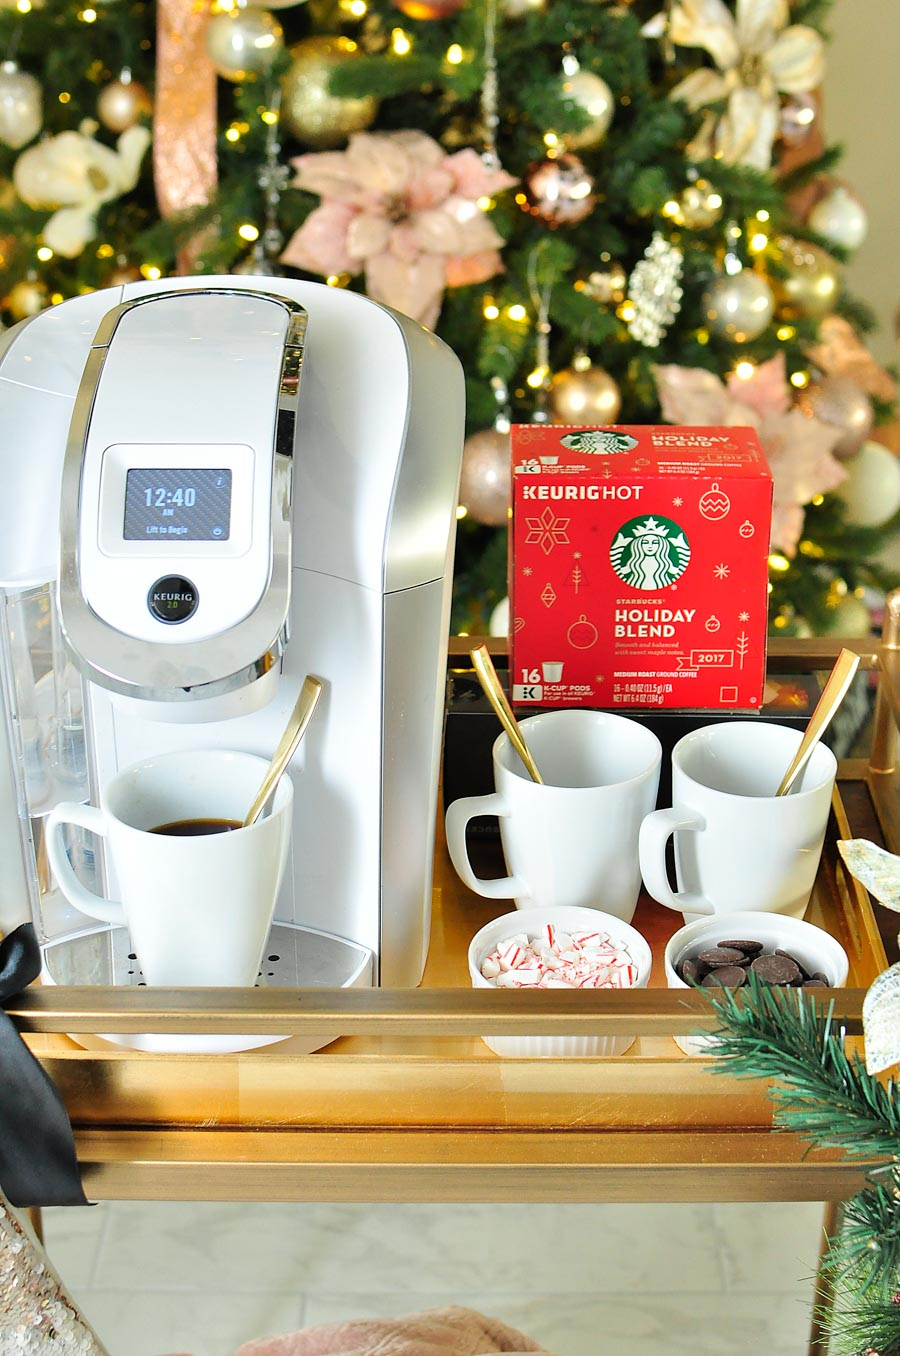 Turn a bar cart into a portable coffee cart (or coffee station) with Starbucks coffee and a Keurig. Perfect for a cozy holiday with the family!